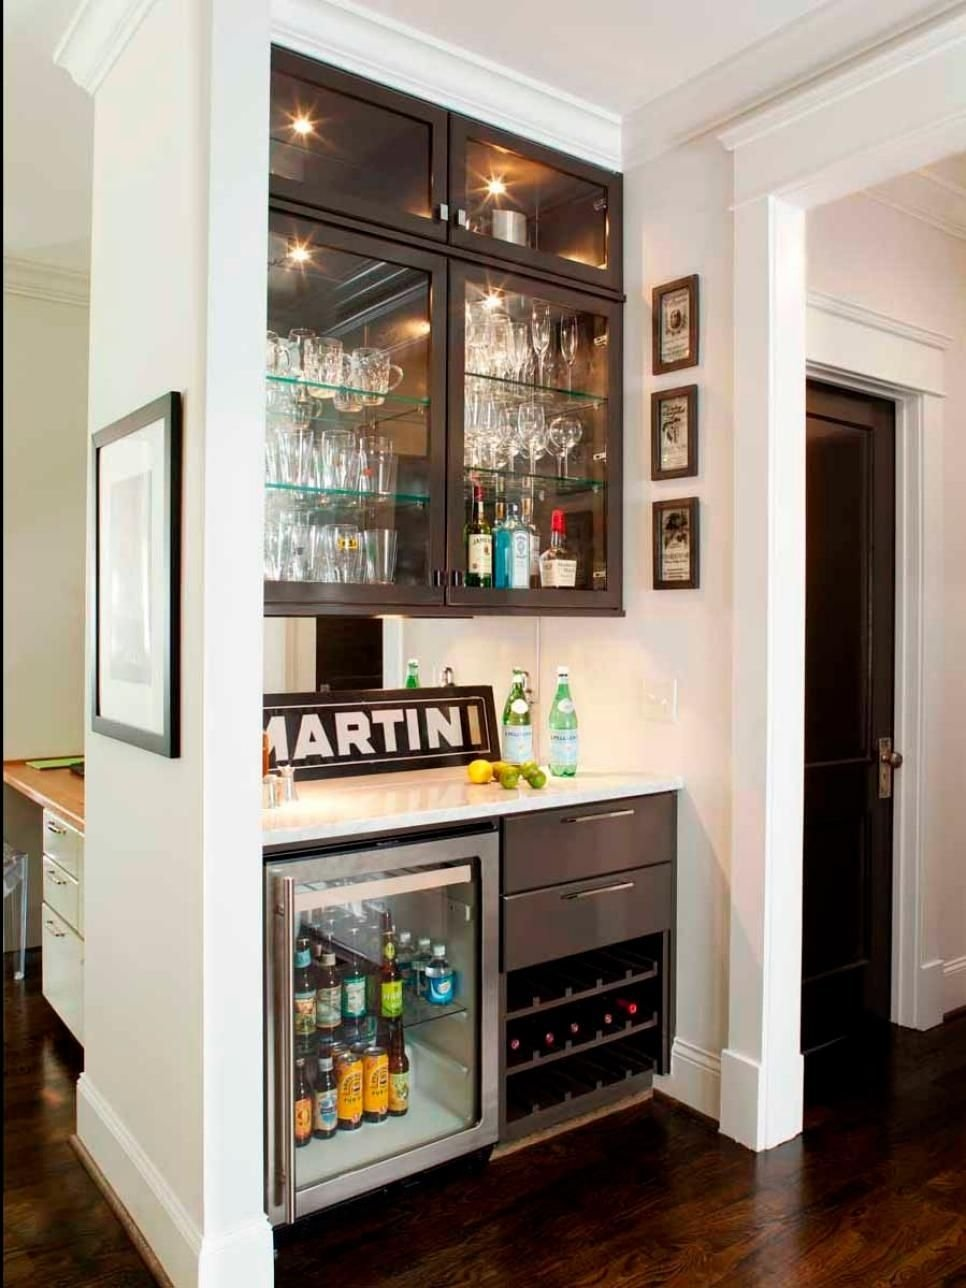 15 stylish small home bar ideas | remodeling ideas, hgtv and basements